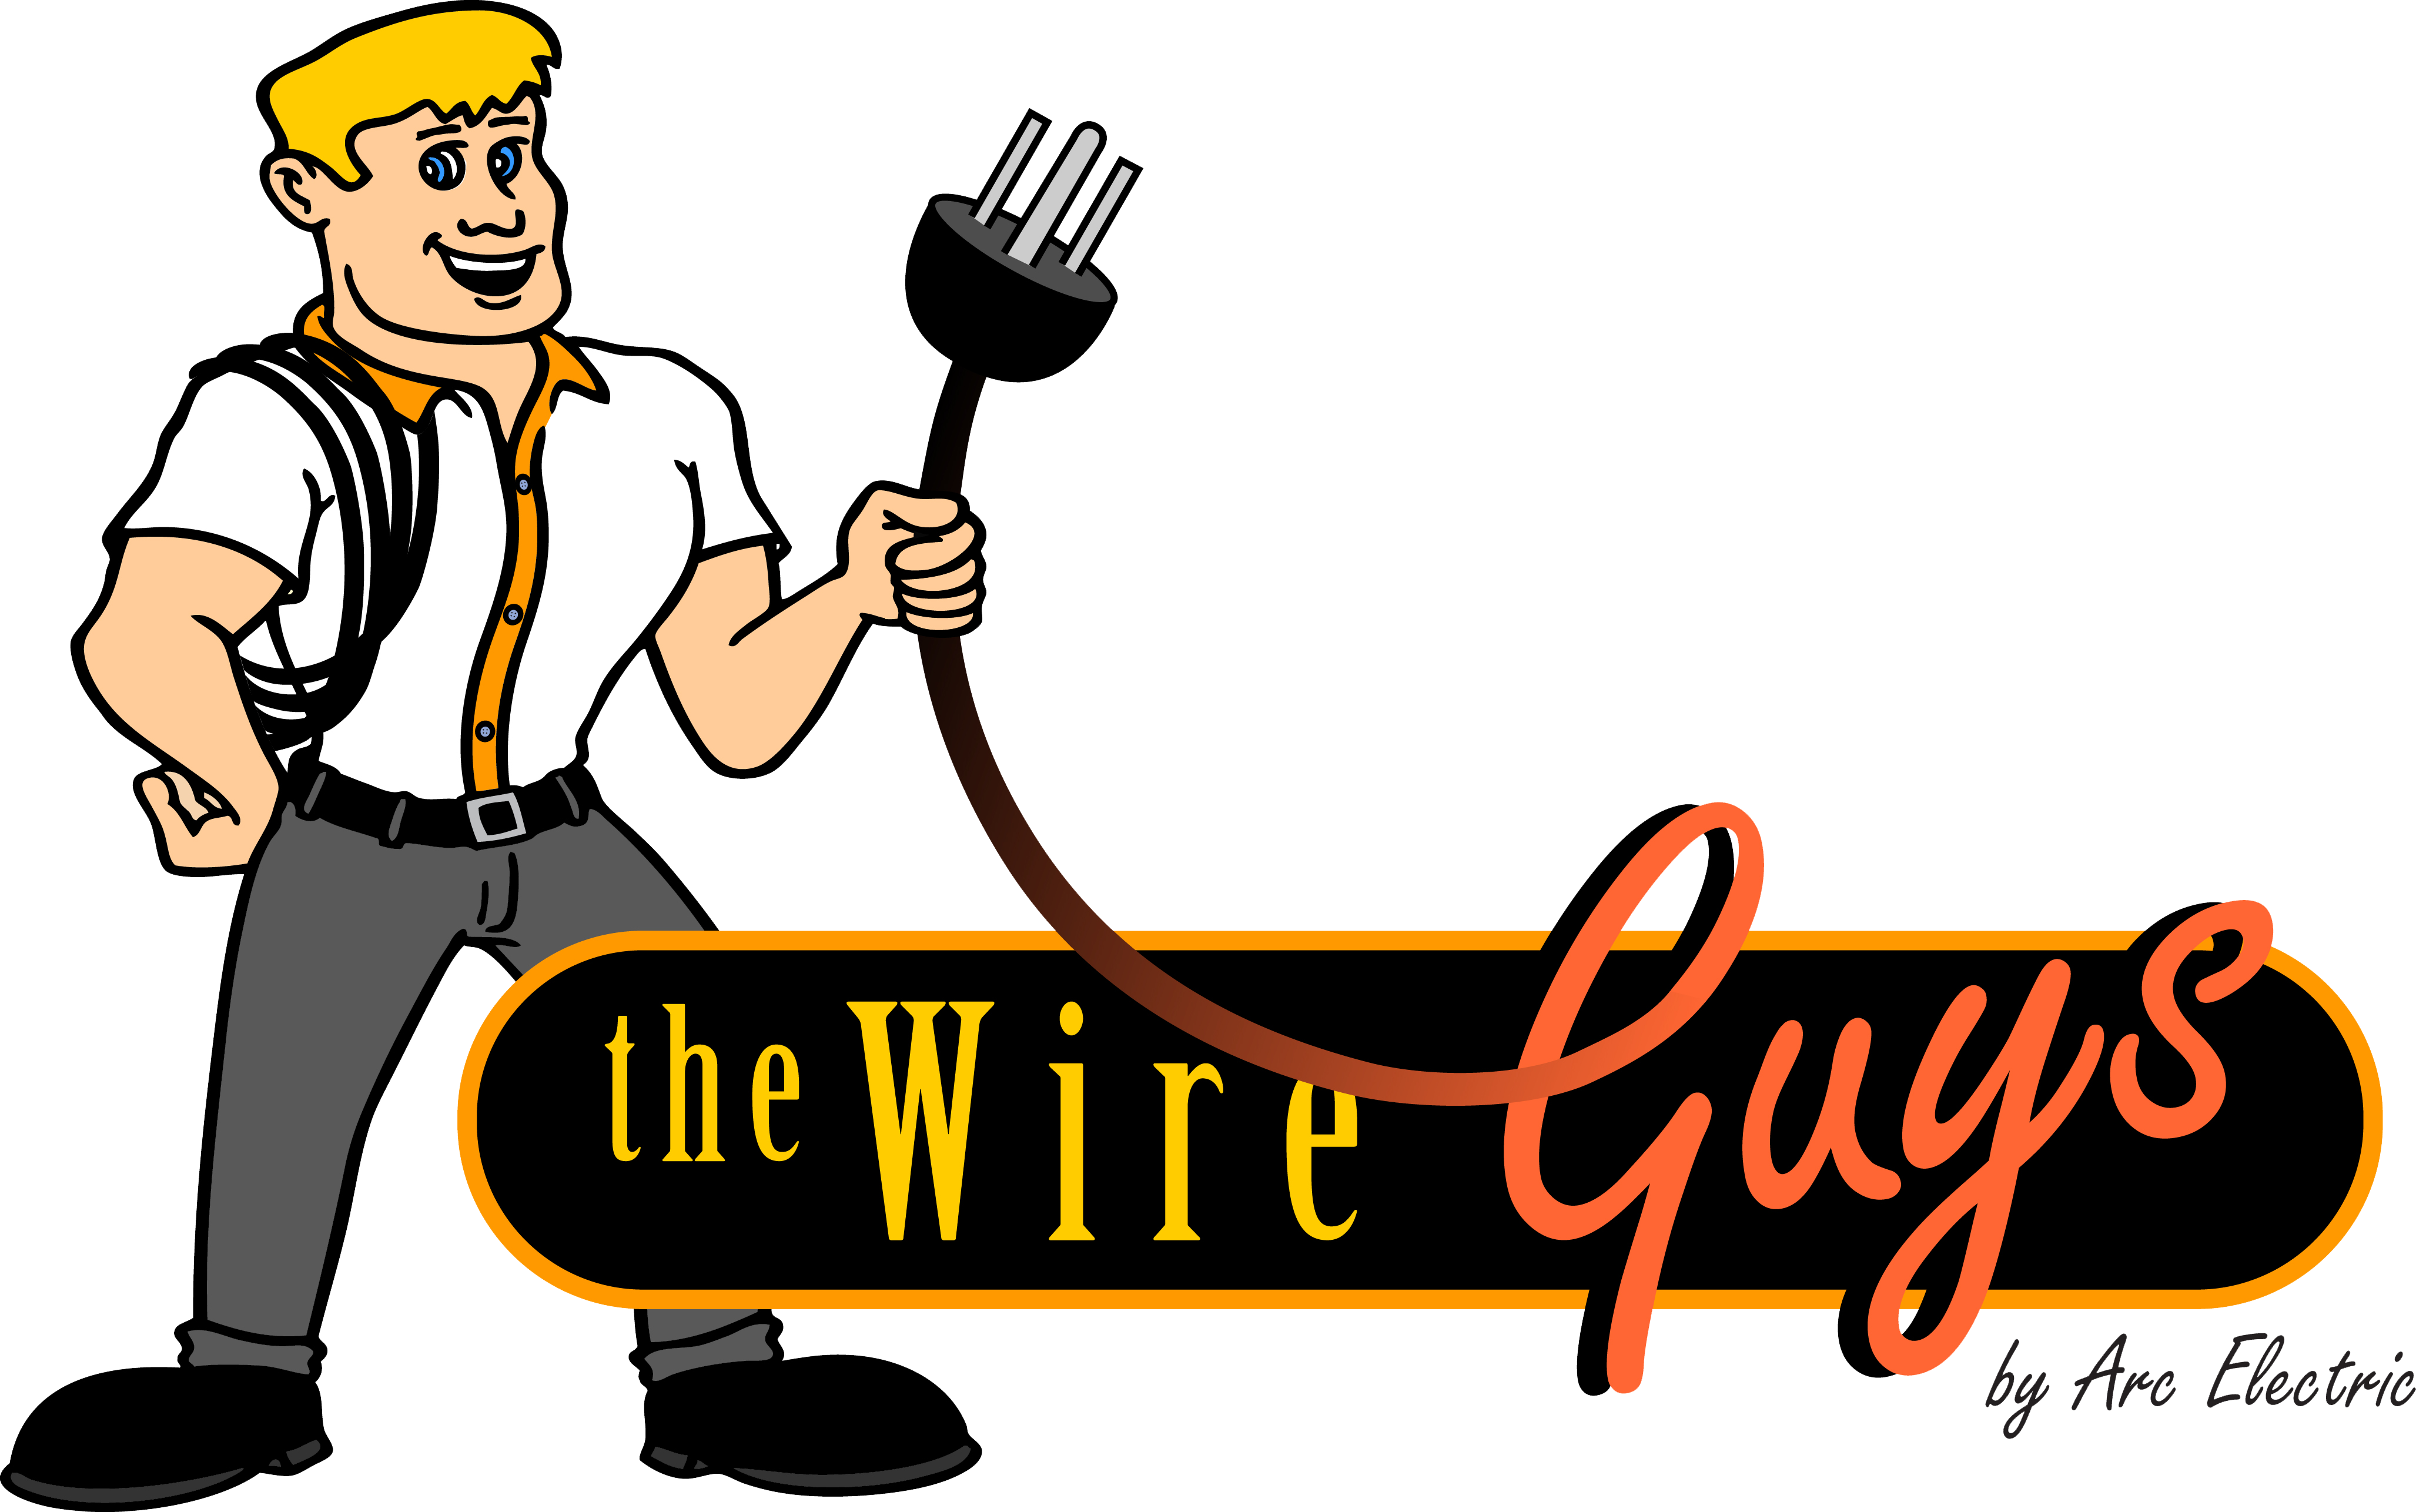 Home Wire Guys – Wire Guys Residential Service